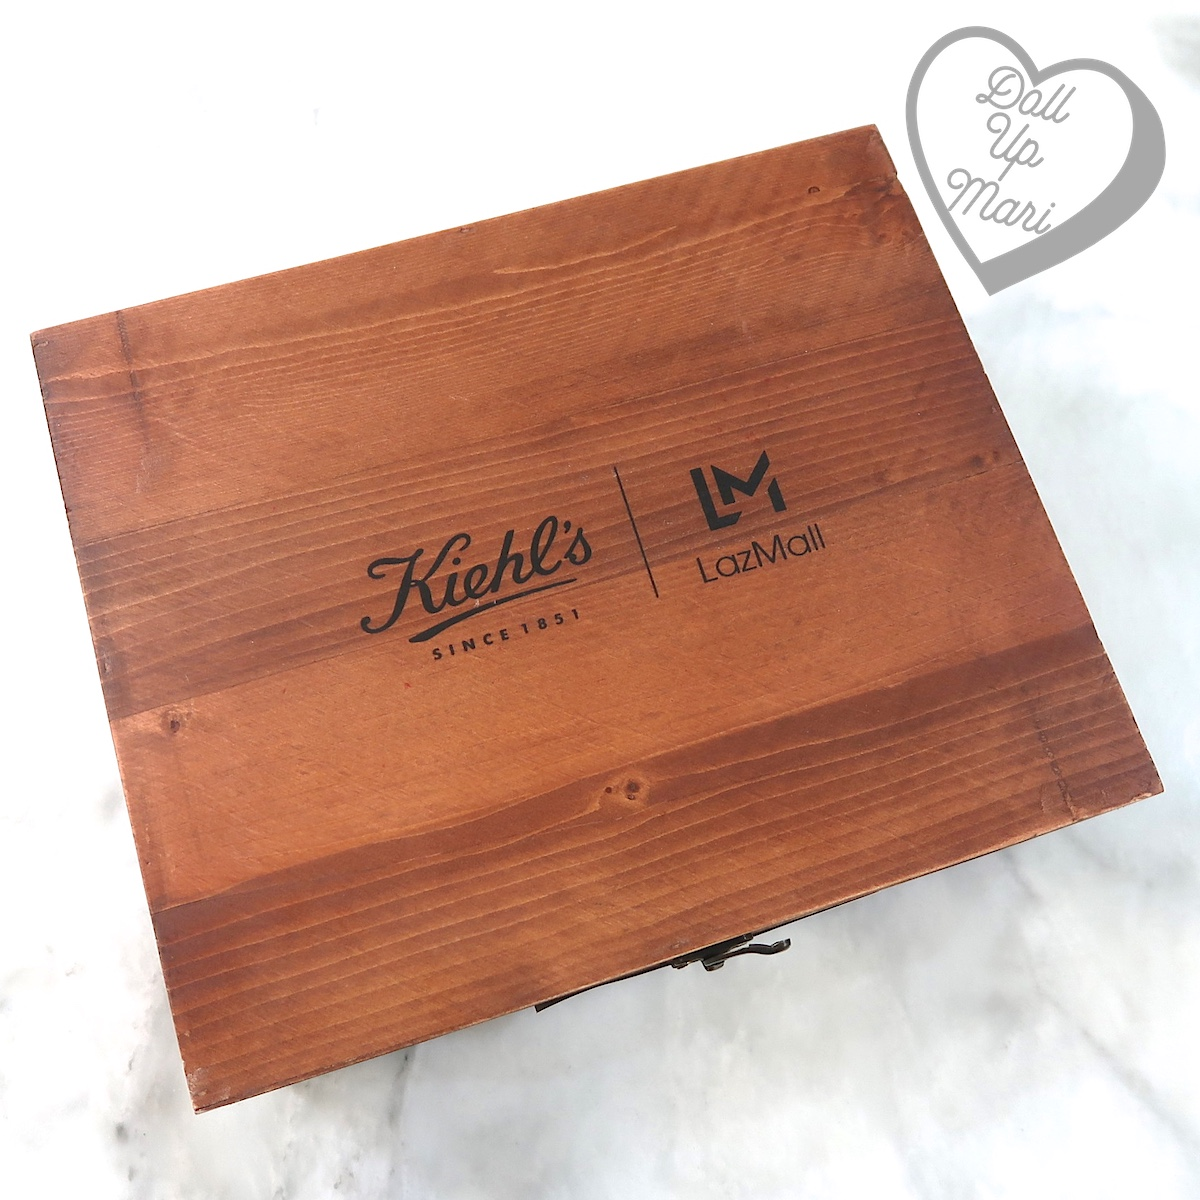 Kiehl's Now At LazMall!